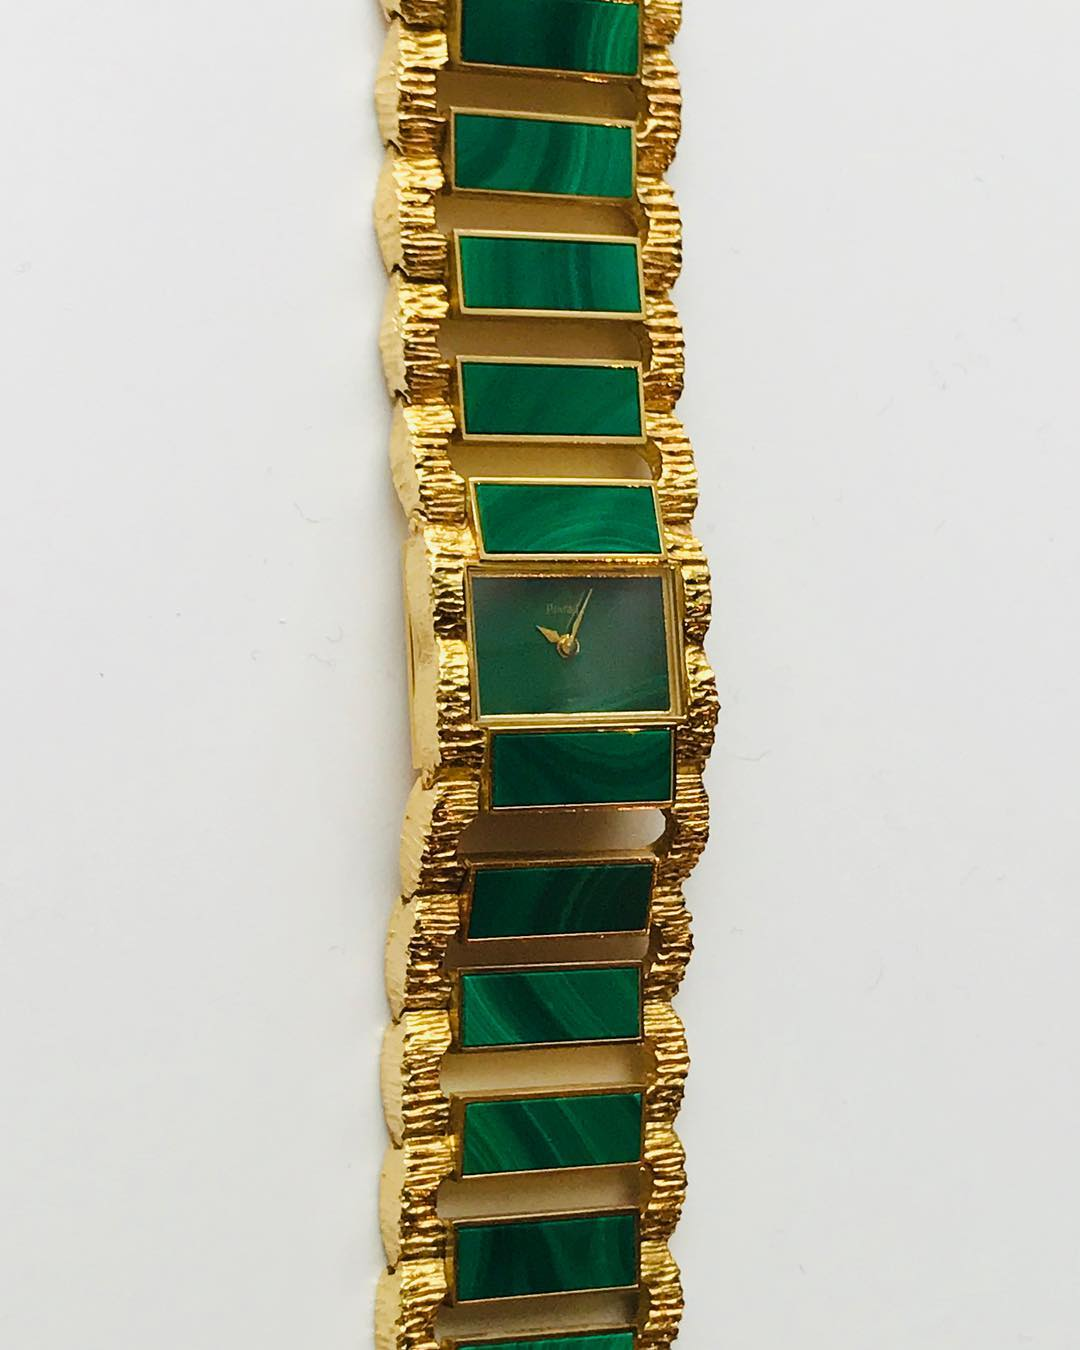 15 vintage @piaget watches in « Le temps est feminin » the upcoming auction @artcurial_watches including this one in #malachite. To see on 16 and 18 december @artcurial__ Did you know? At this occasion the iconic #jackiekennedy Piaget watch is exhibited.  ___________ #artcurialparis @marie.anselot @alexandradub @madlyne_c #rondpointdeschampselysees #todoinparis #parisexhibition #vintagepiaget #watchoftheday #piagetwatch #watchporn #seventiesstyle #letempsestfeminin